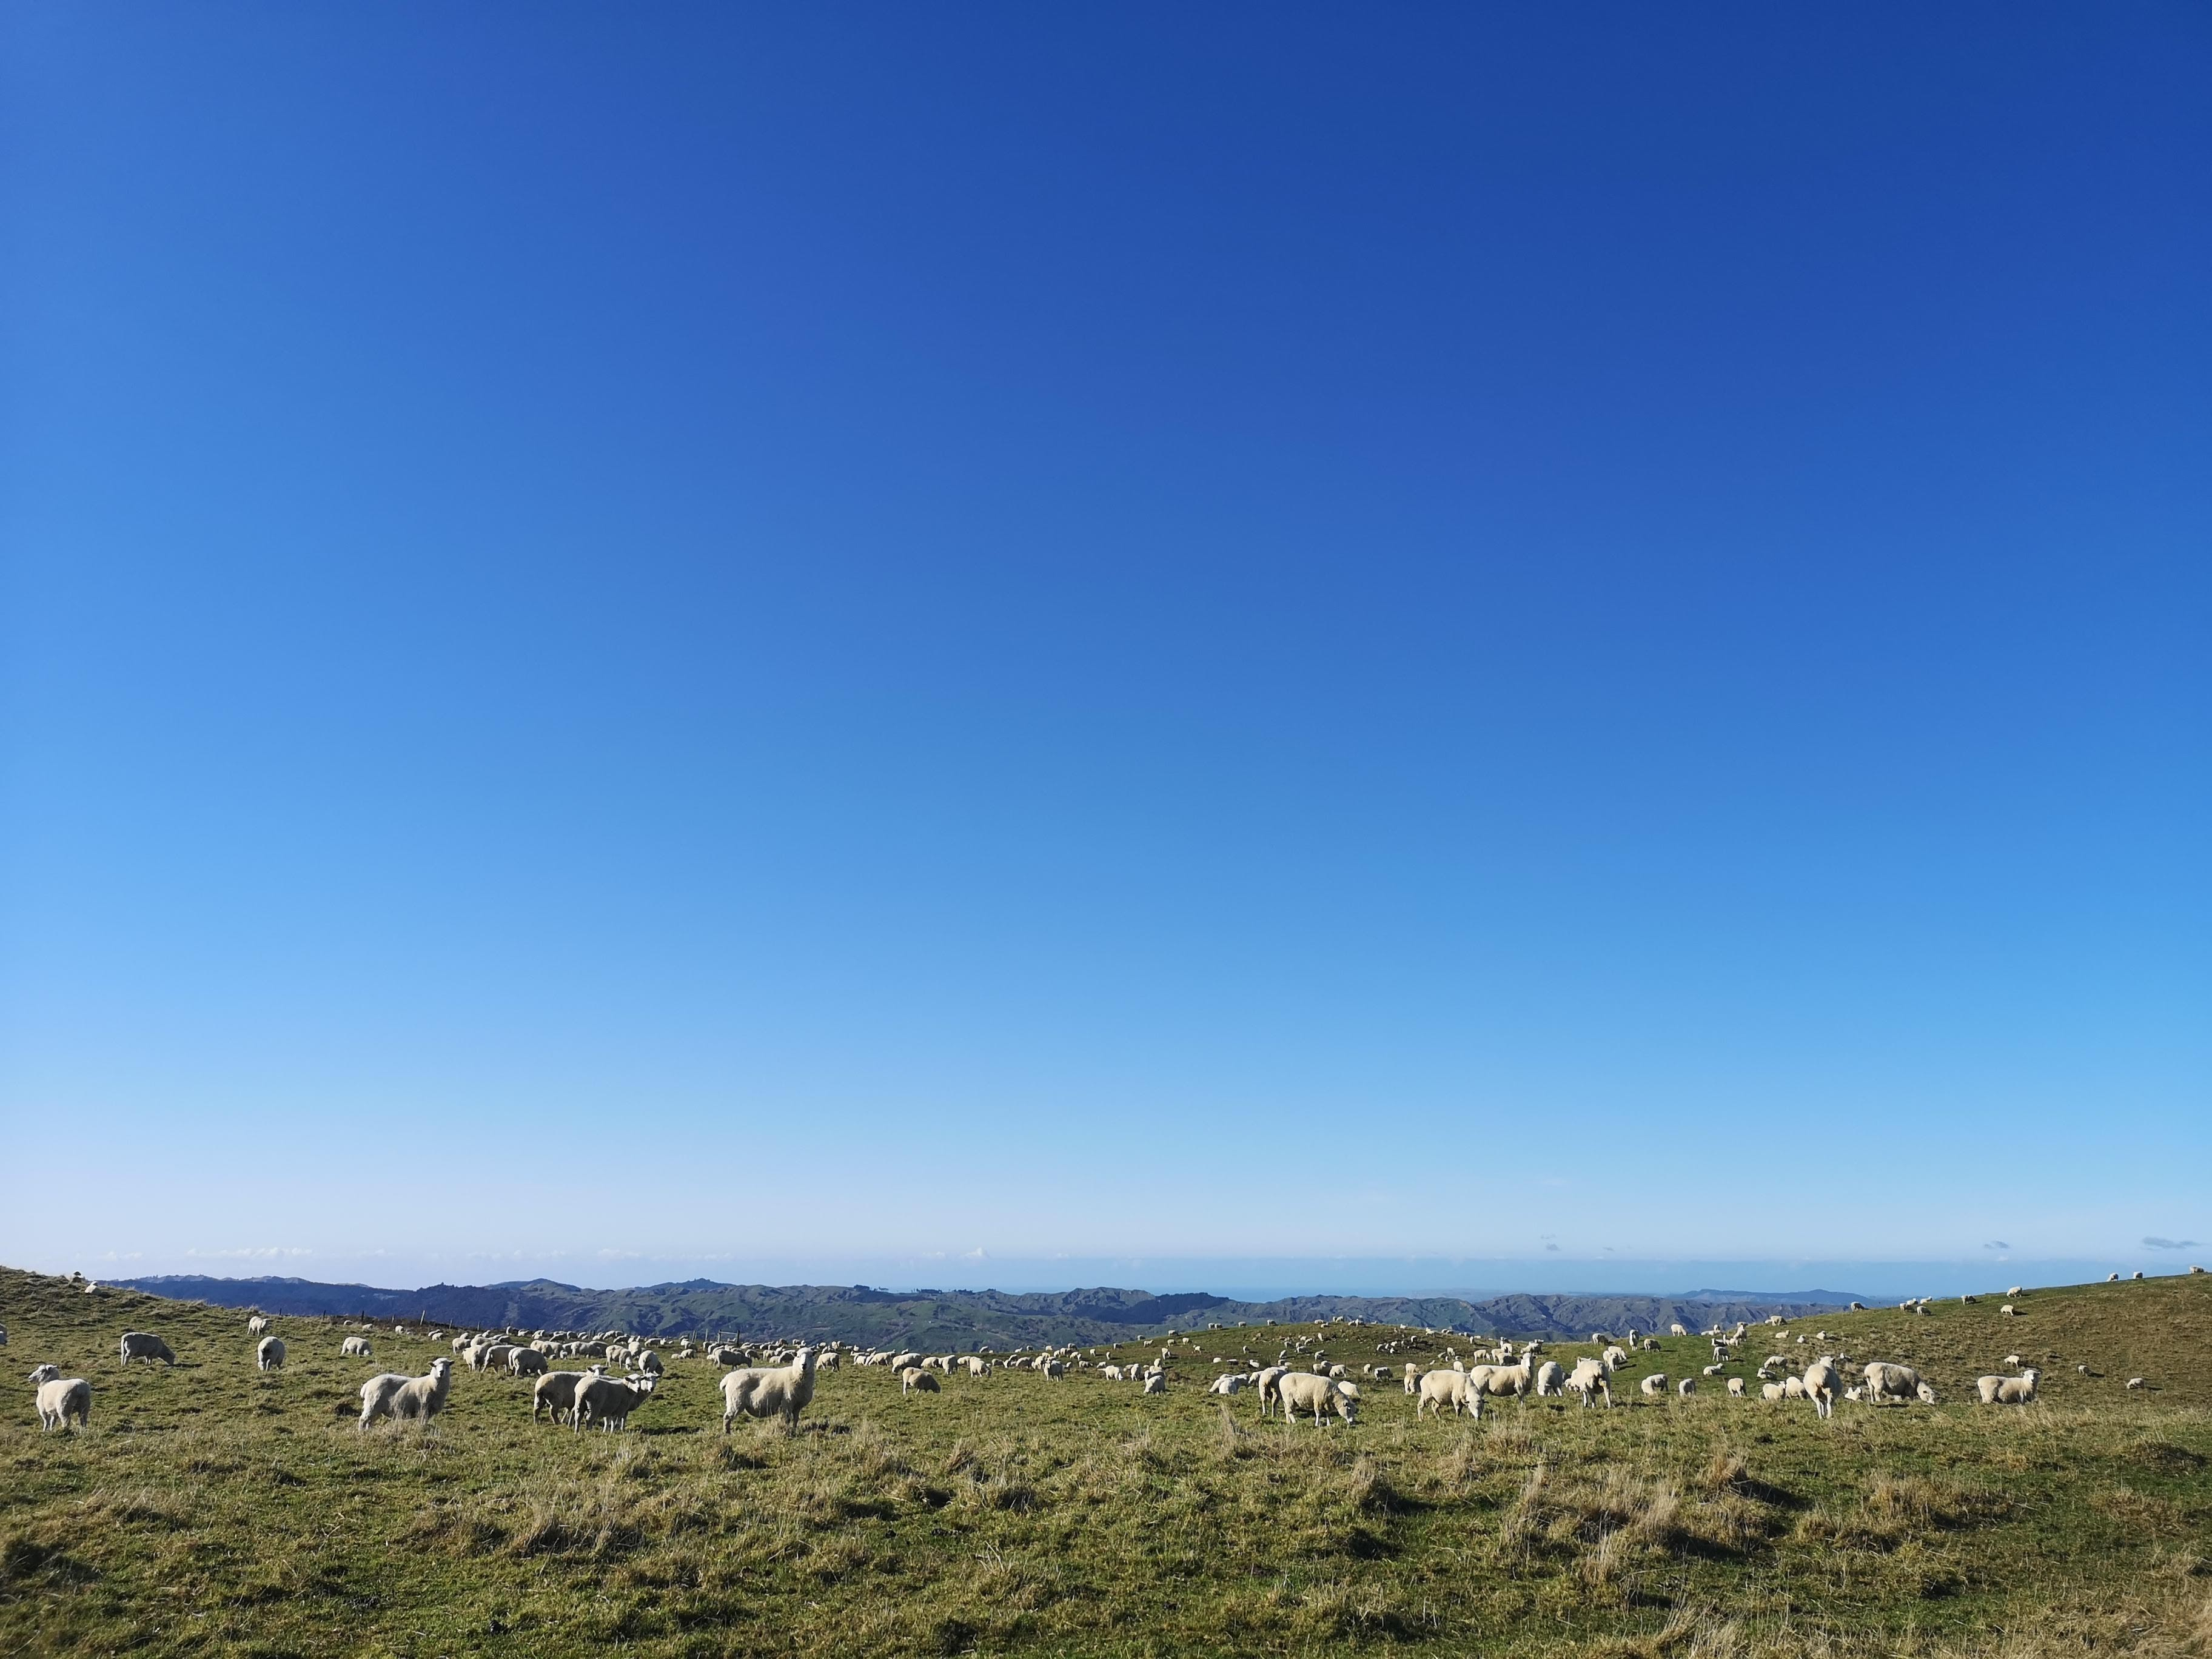 A Field Full of Sheep